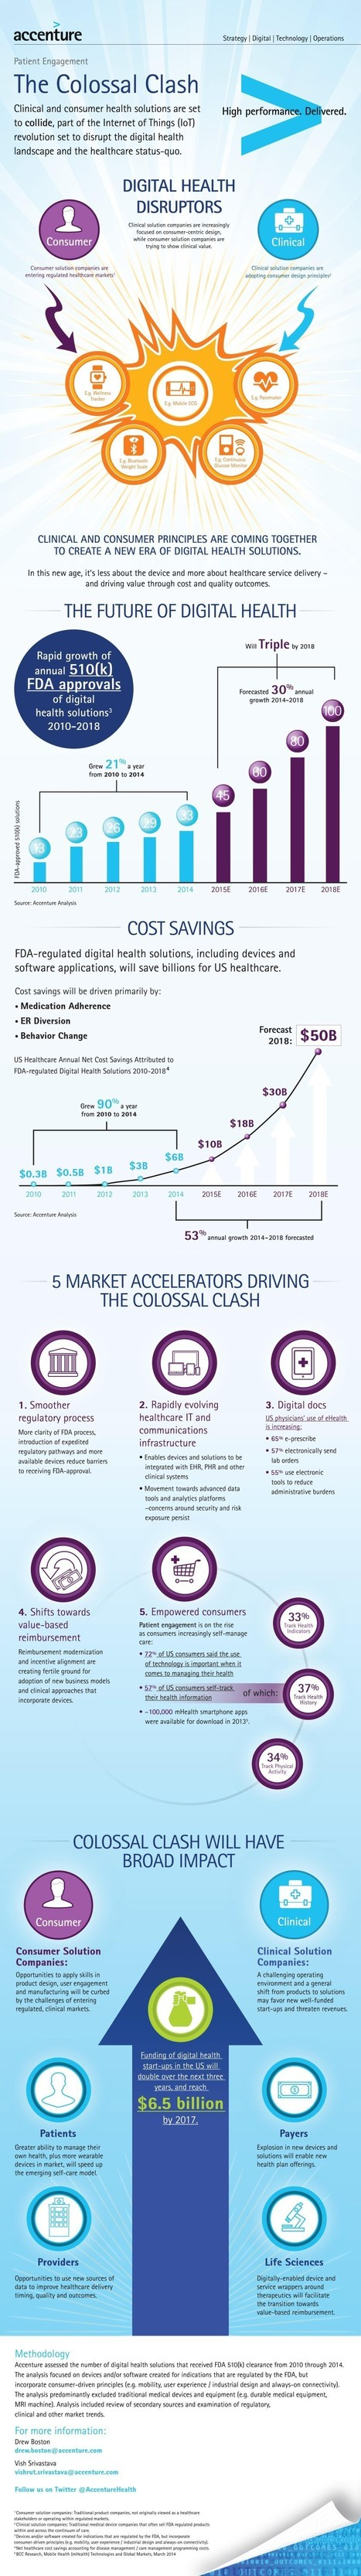 Digital Health Landscape Disrupted By This Colossal Clash [INFOGRAPHIC] | Latest mHealth News | Scoop.it